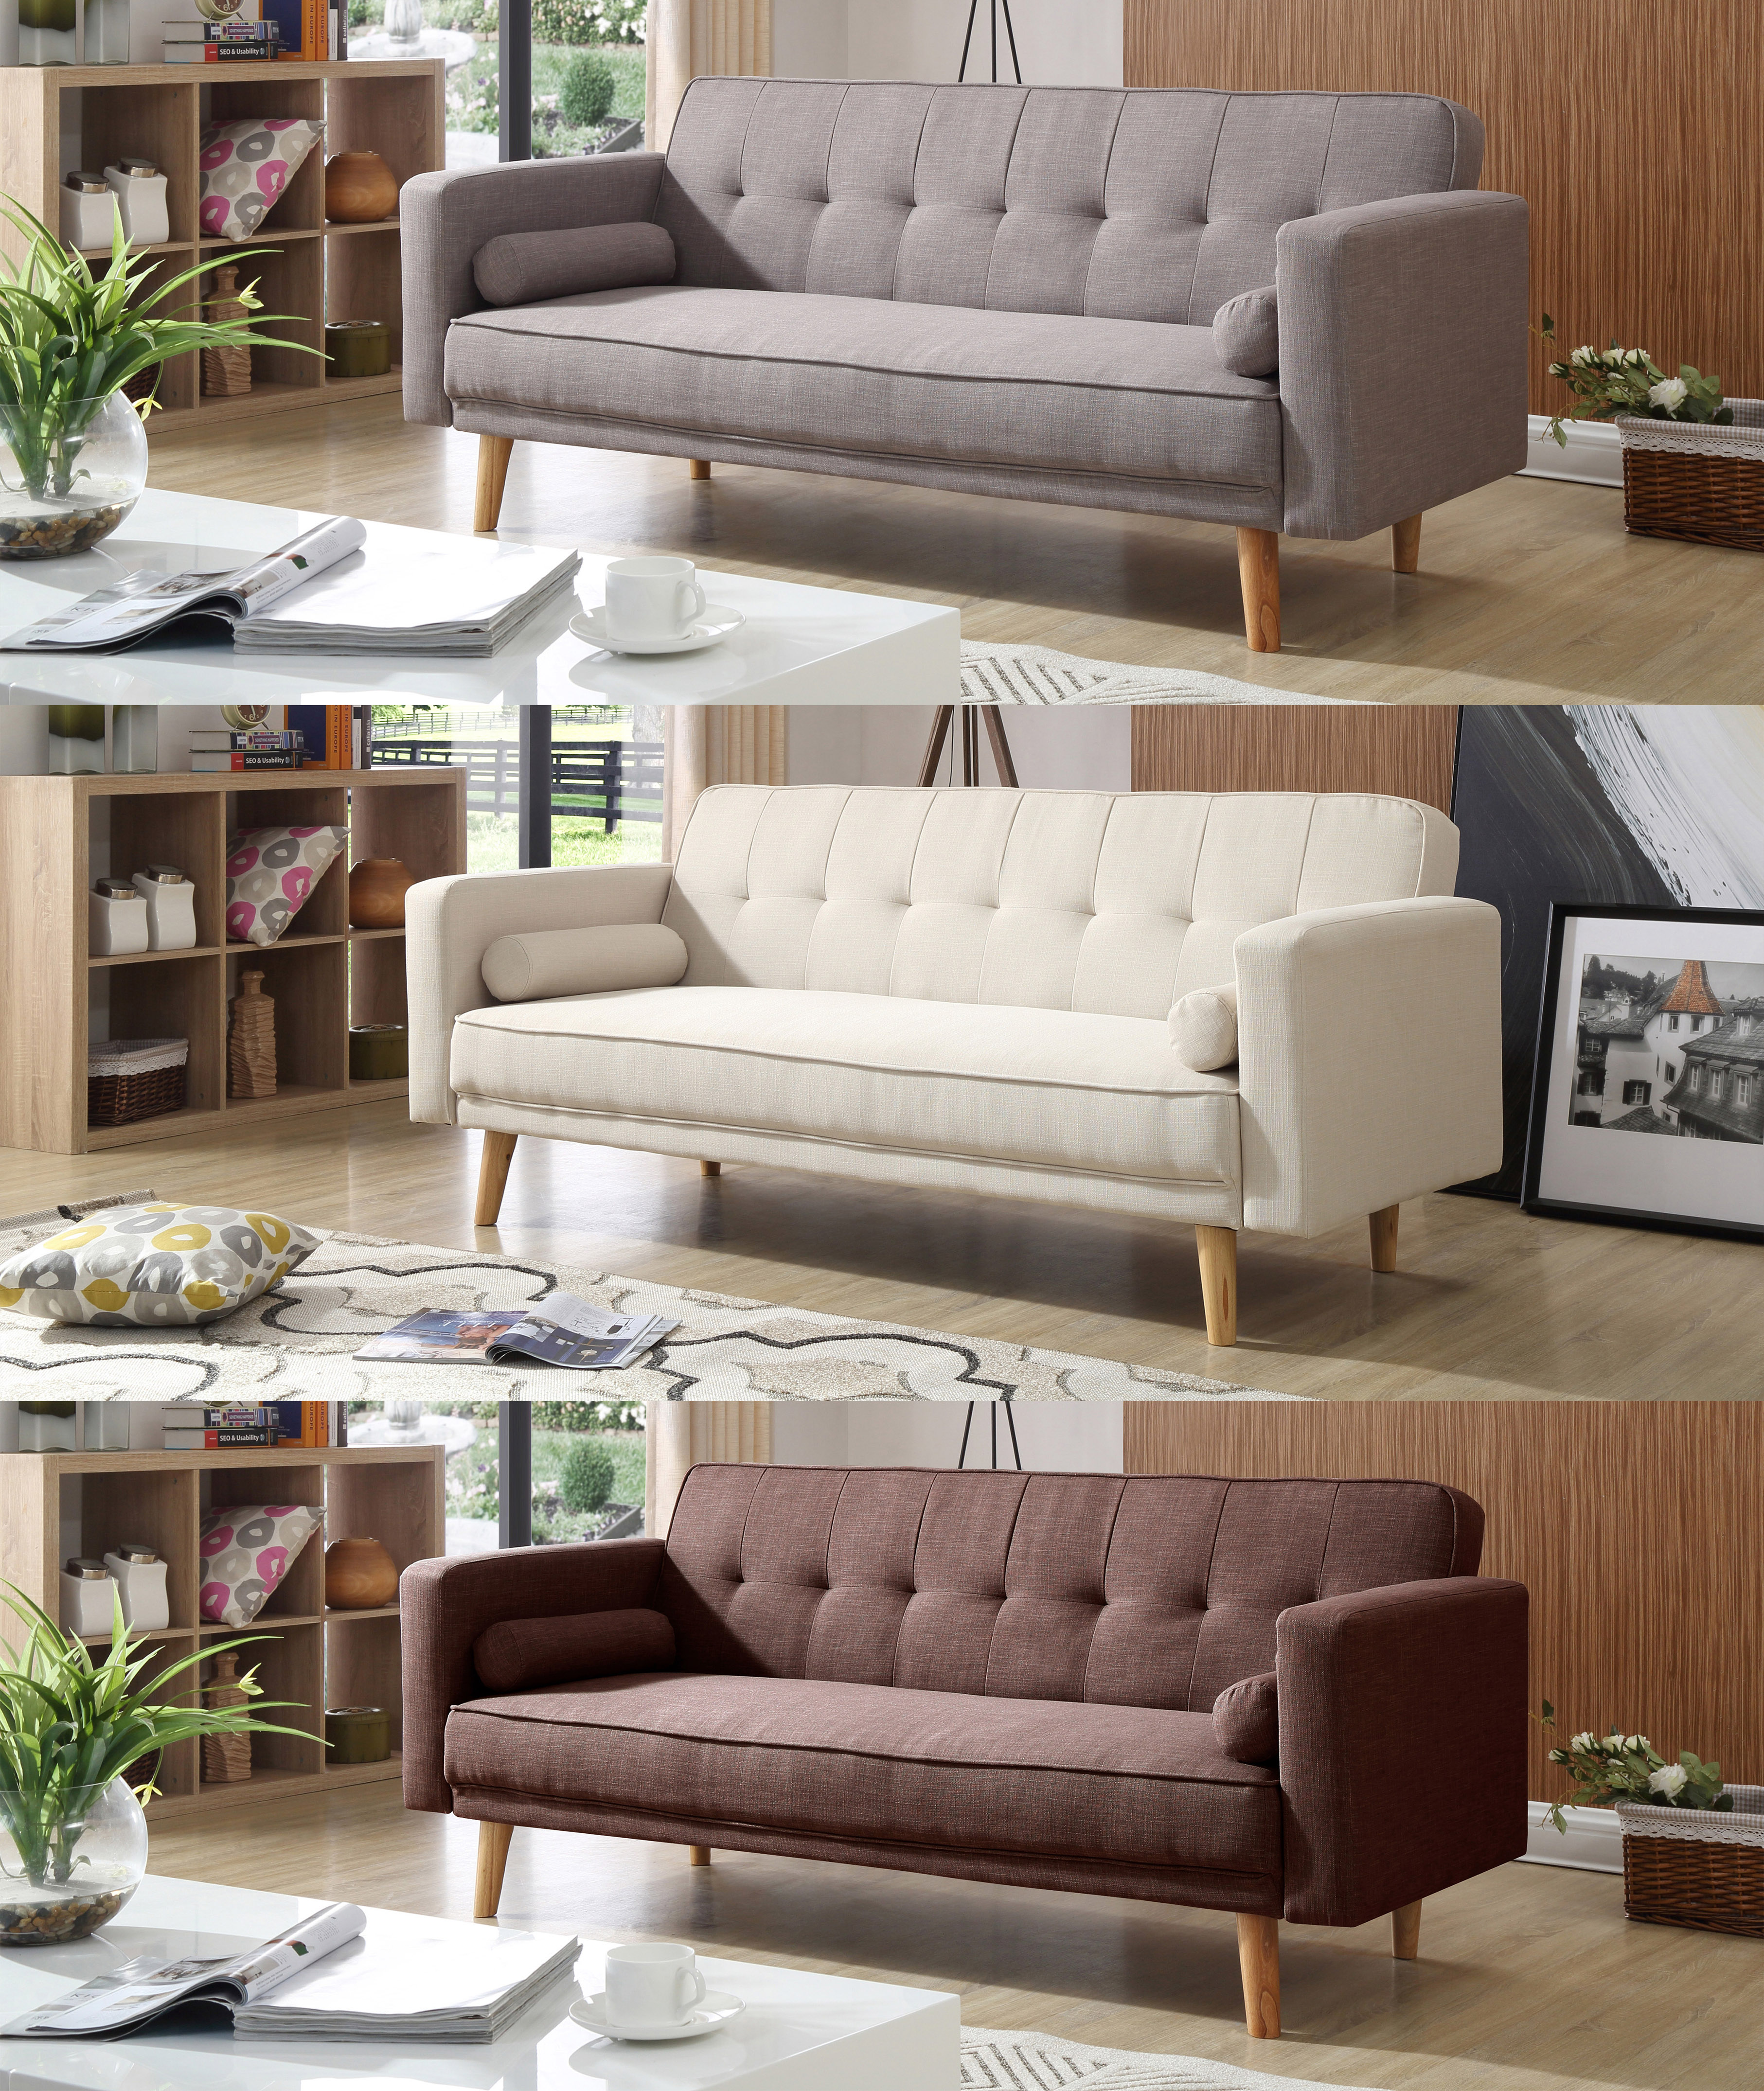 Hom Furniture Fabric Protection Luxury Fabric Sofa Designer Fabric Sofa Luxury Sofas